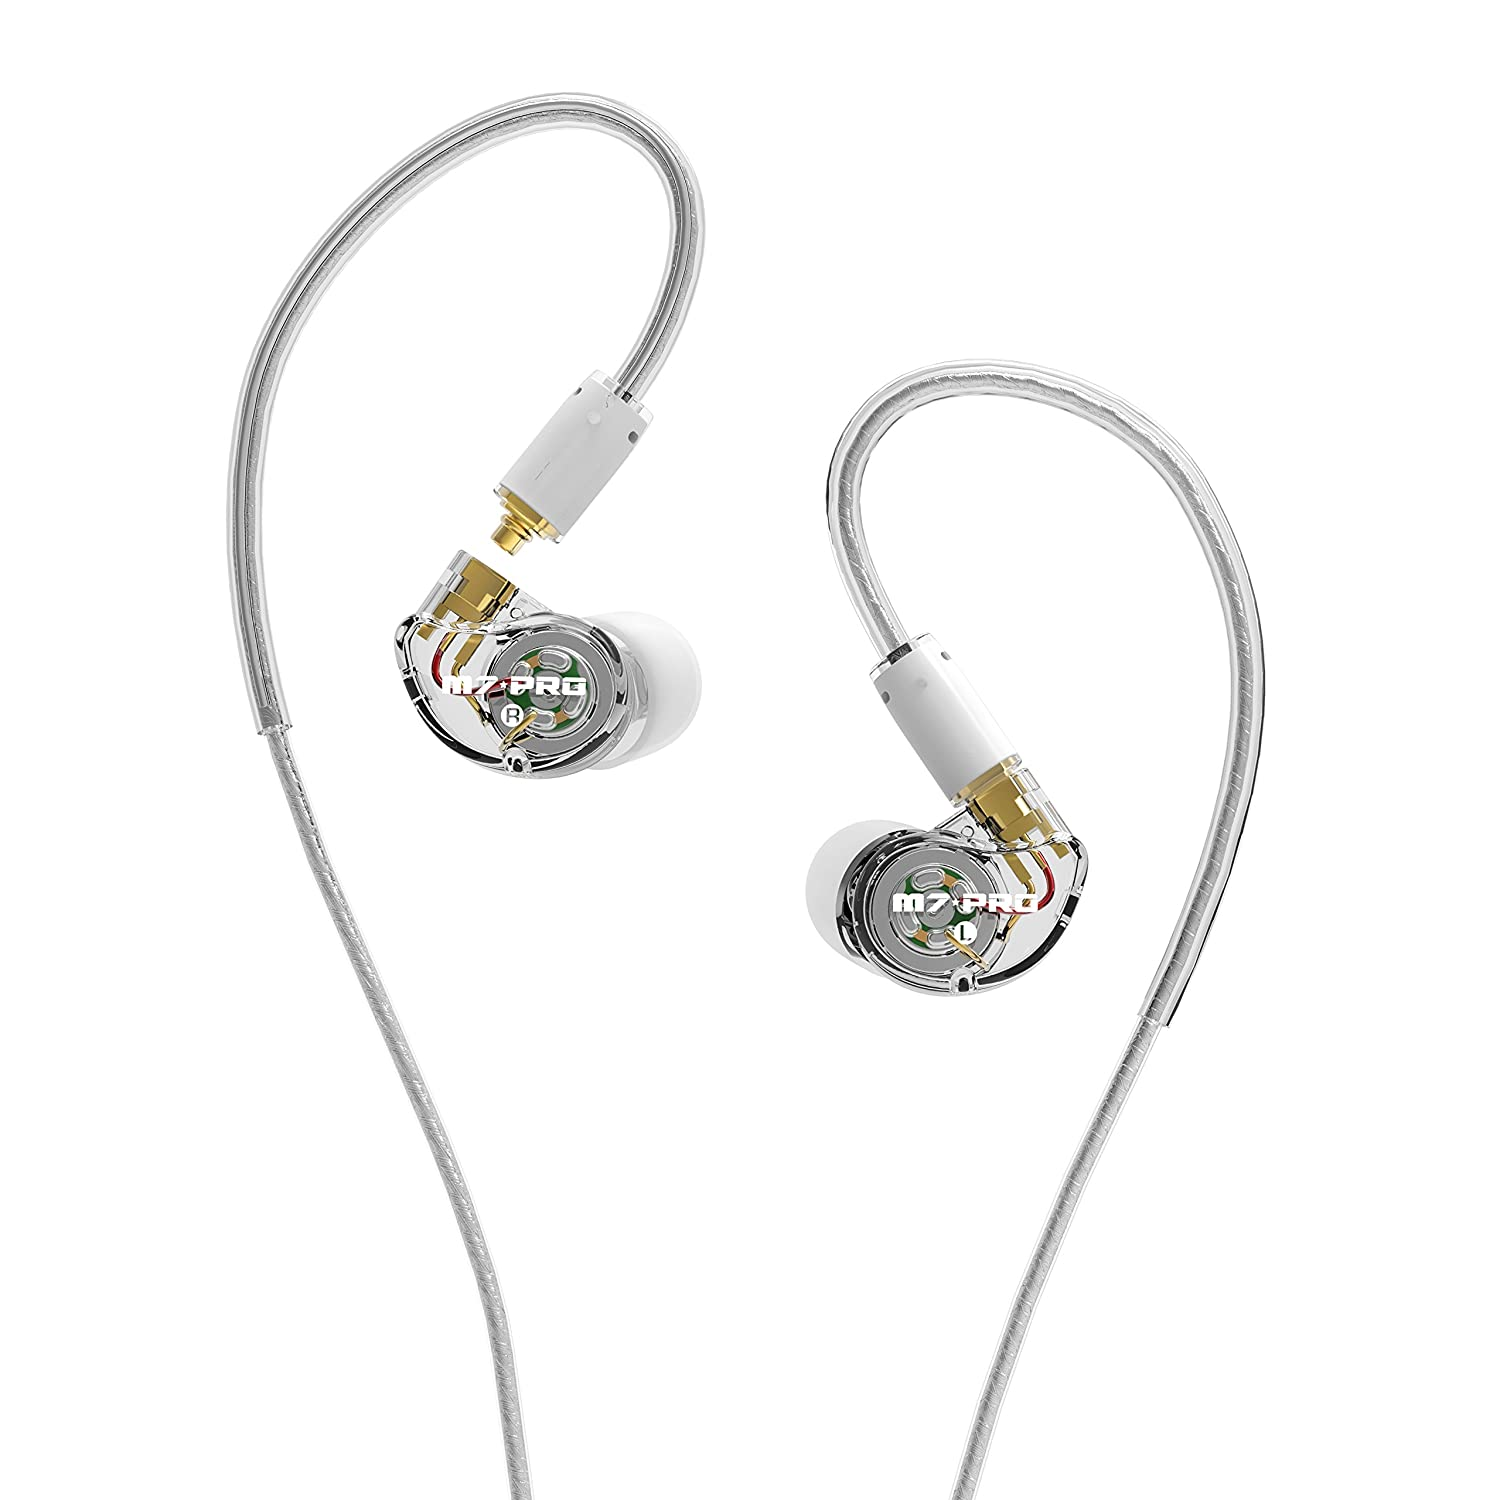 MEE Audio EP-M7PRO-CL-MEE in-Ear Monitors with Detachable